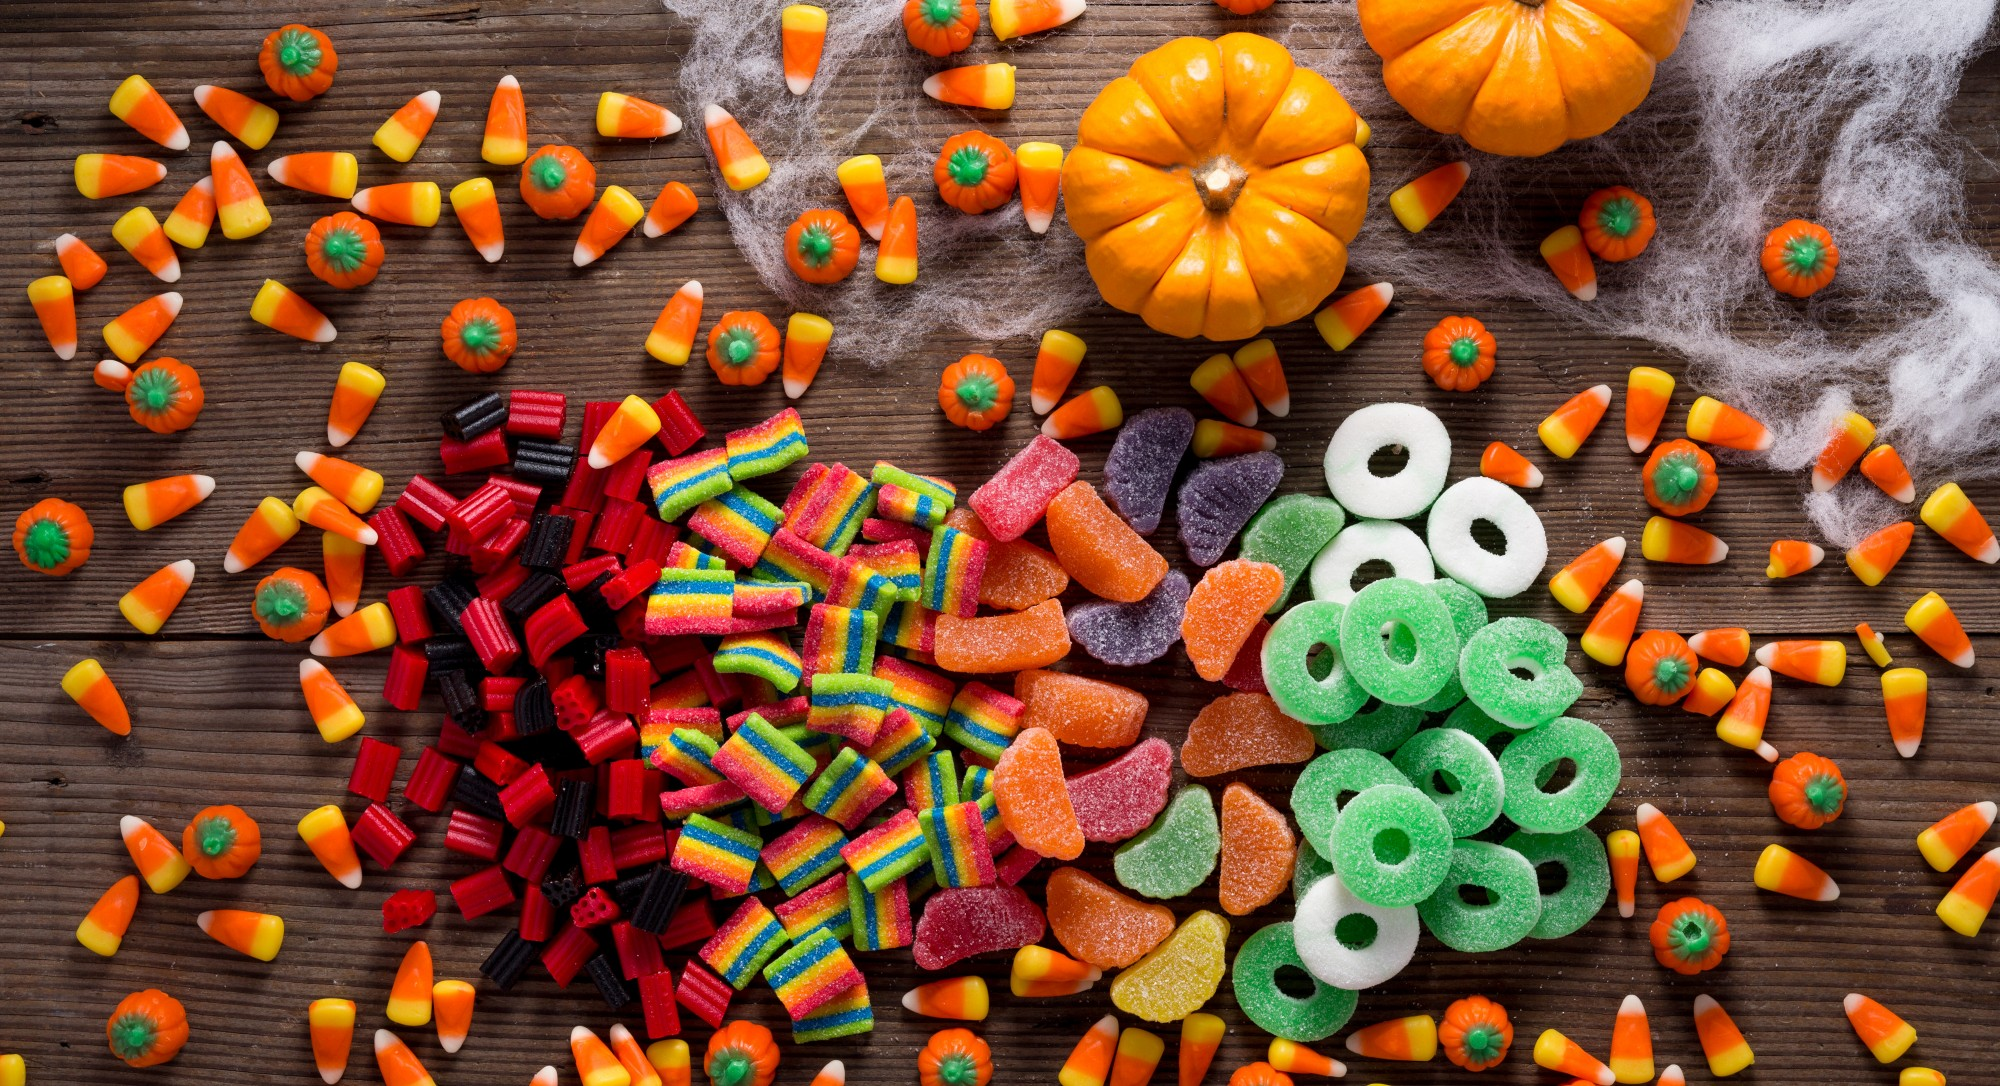 Boo! These Halloween Candy Ingredients Are a Fright